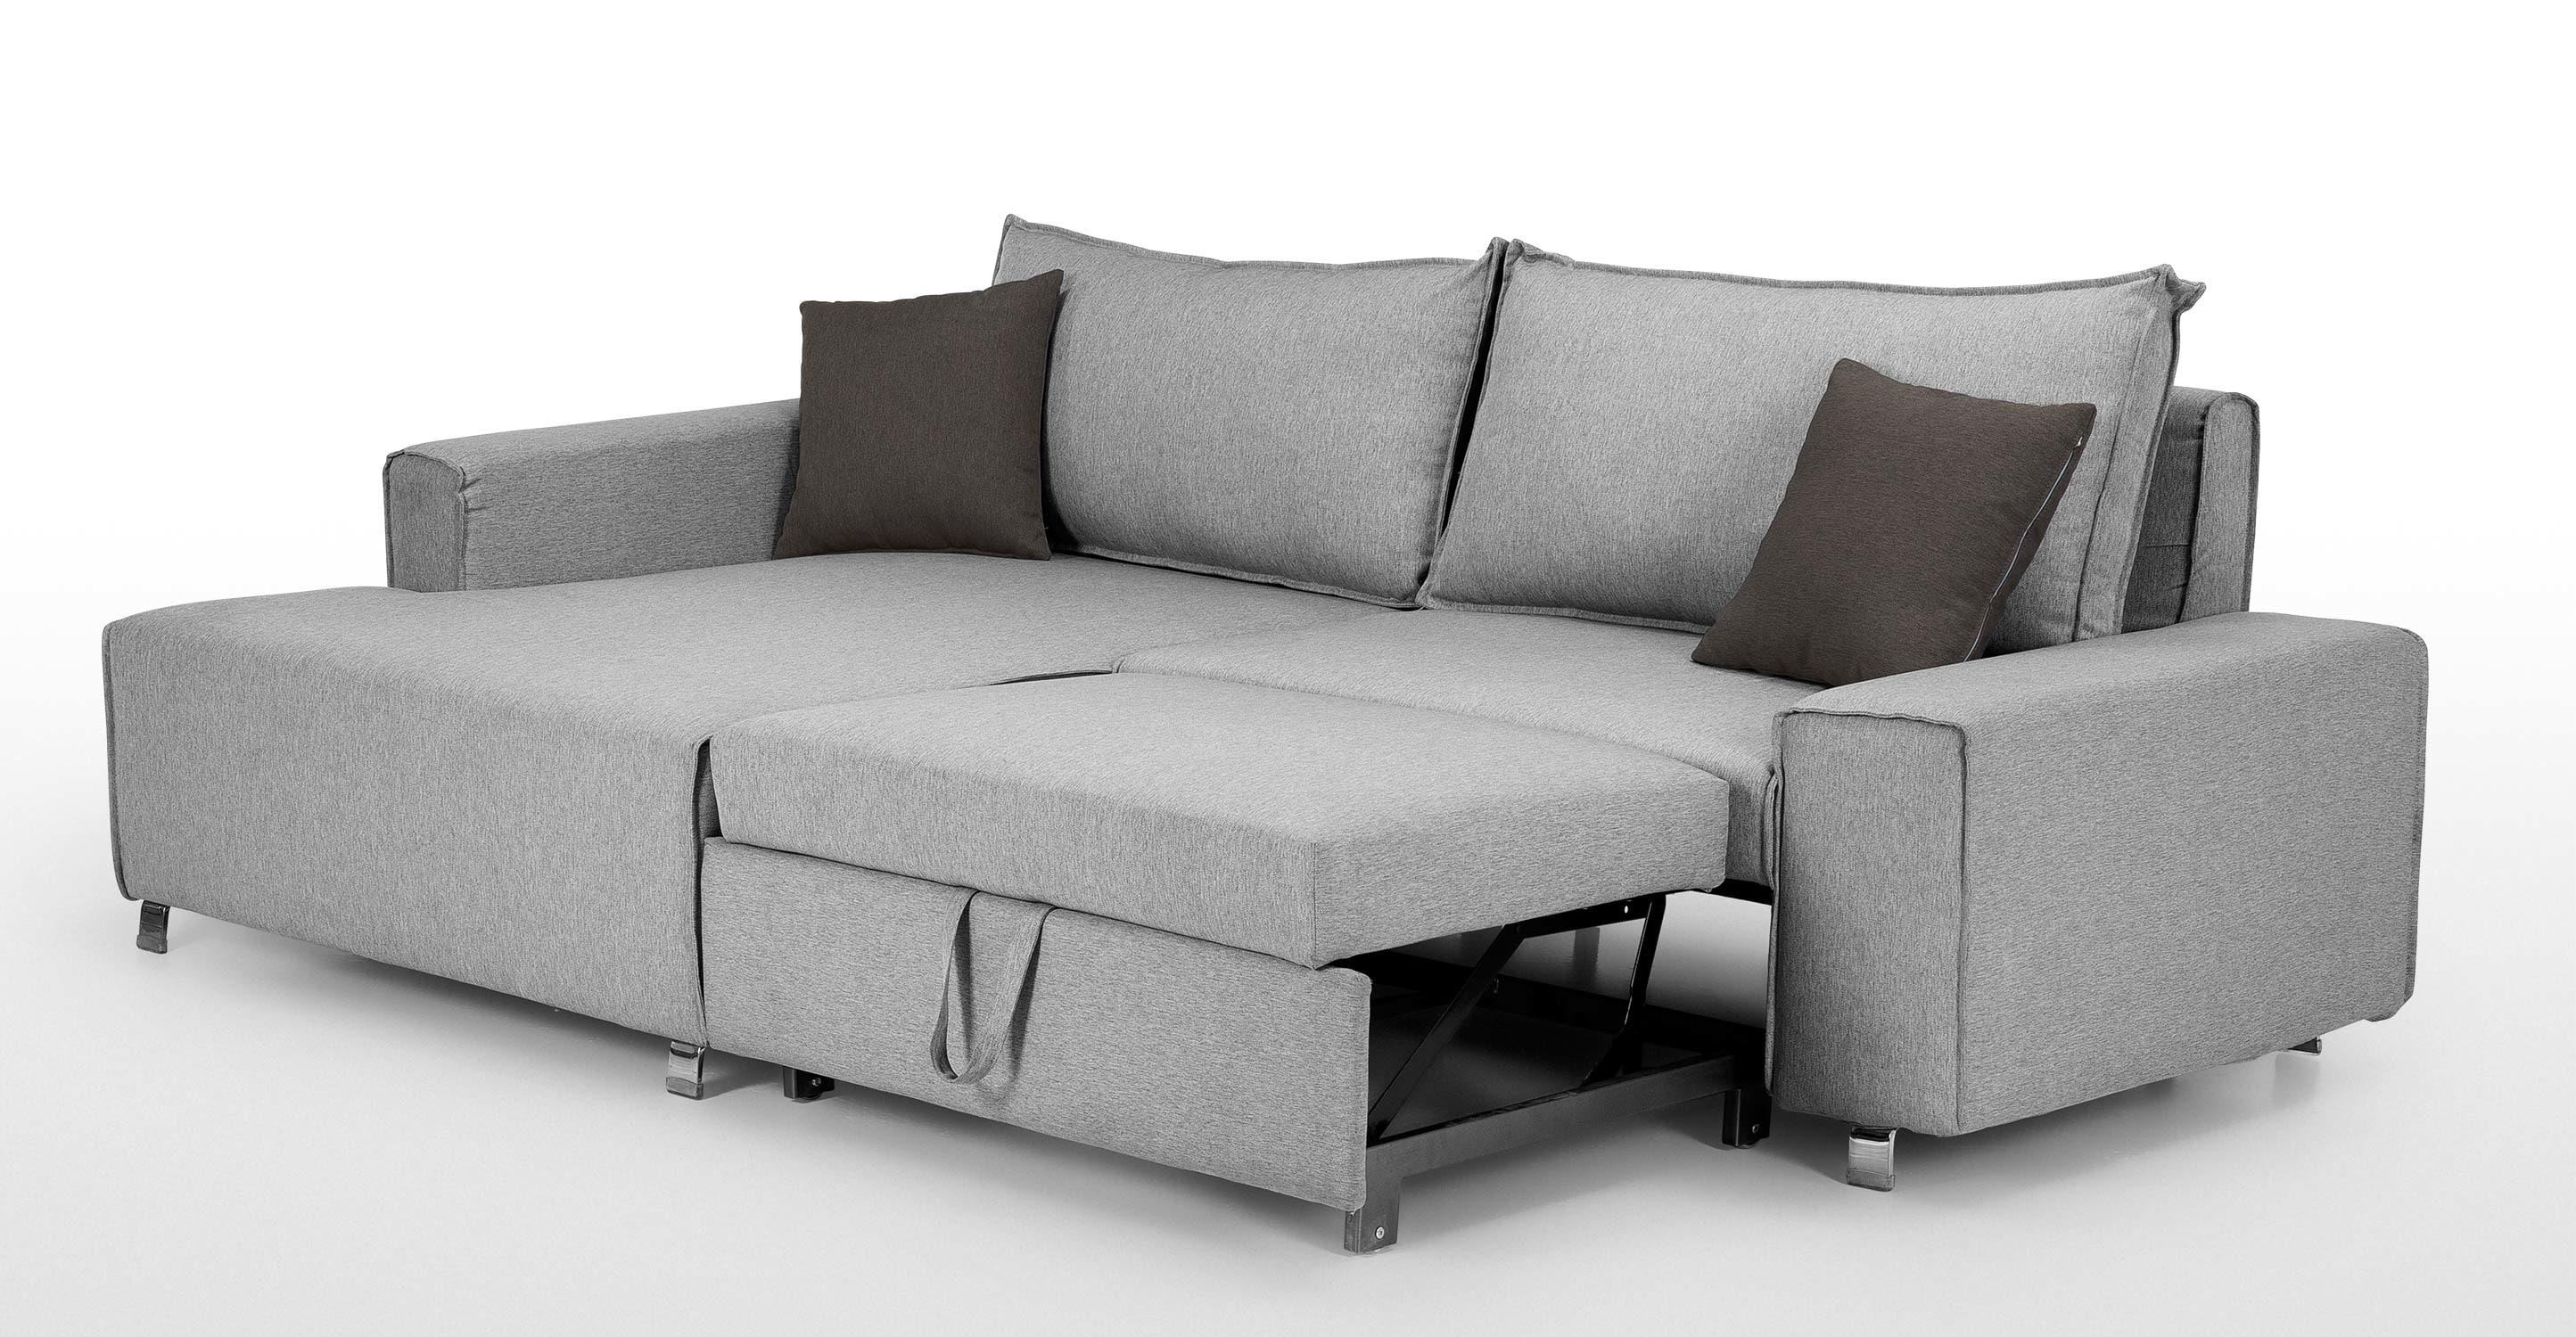 Mayne Left Hand Facing Corner Sofa Bed, Clear Grey Stone | Made Within Sofa Corner Units (View 24 of 24)